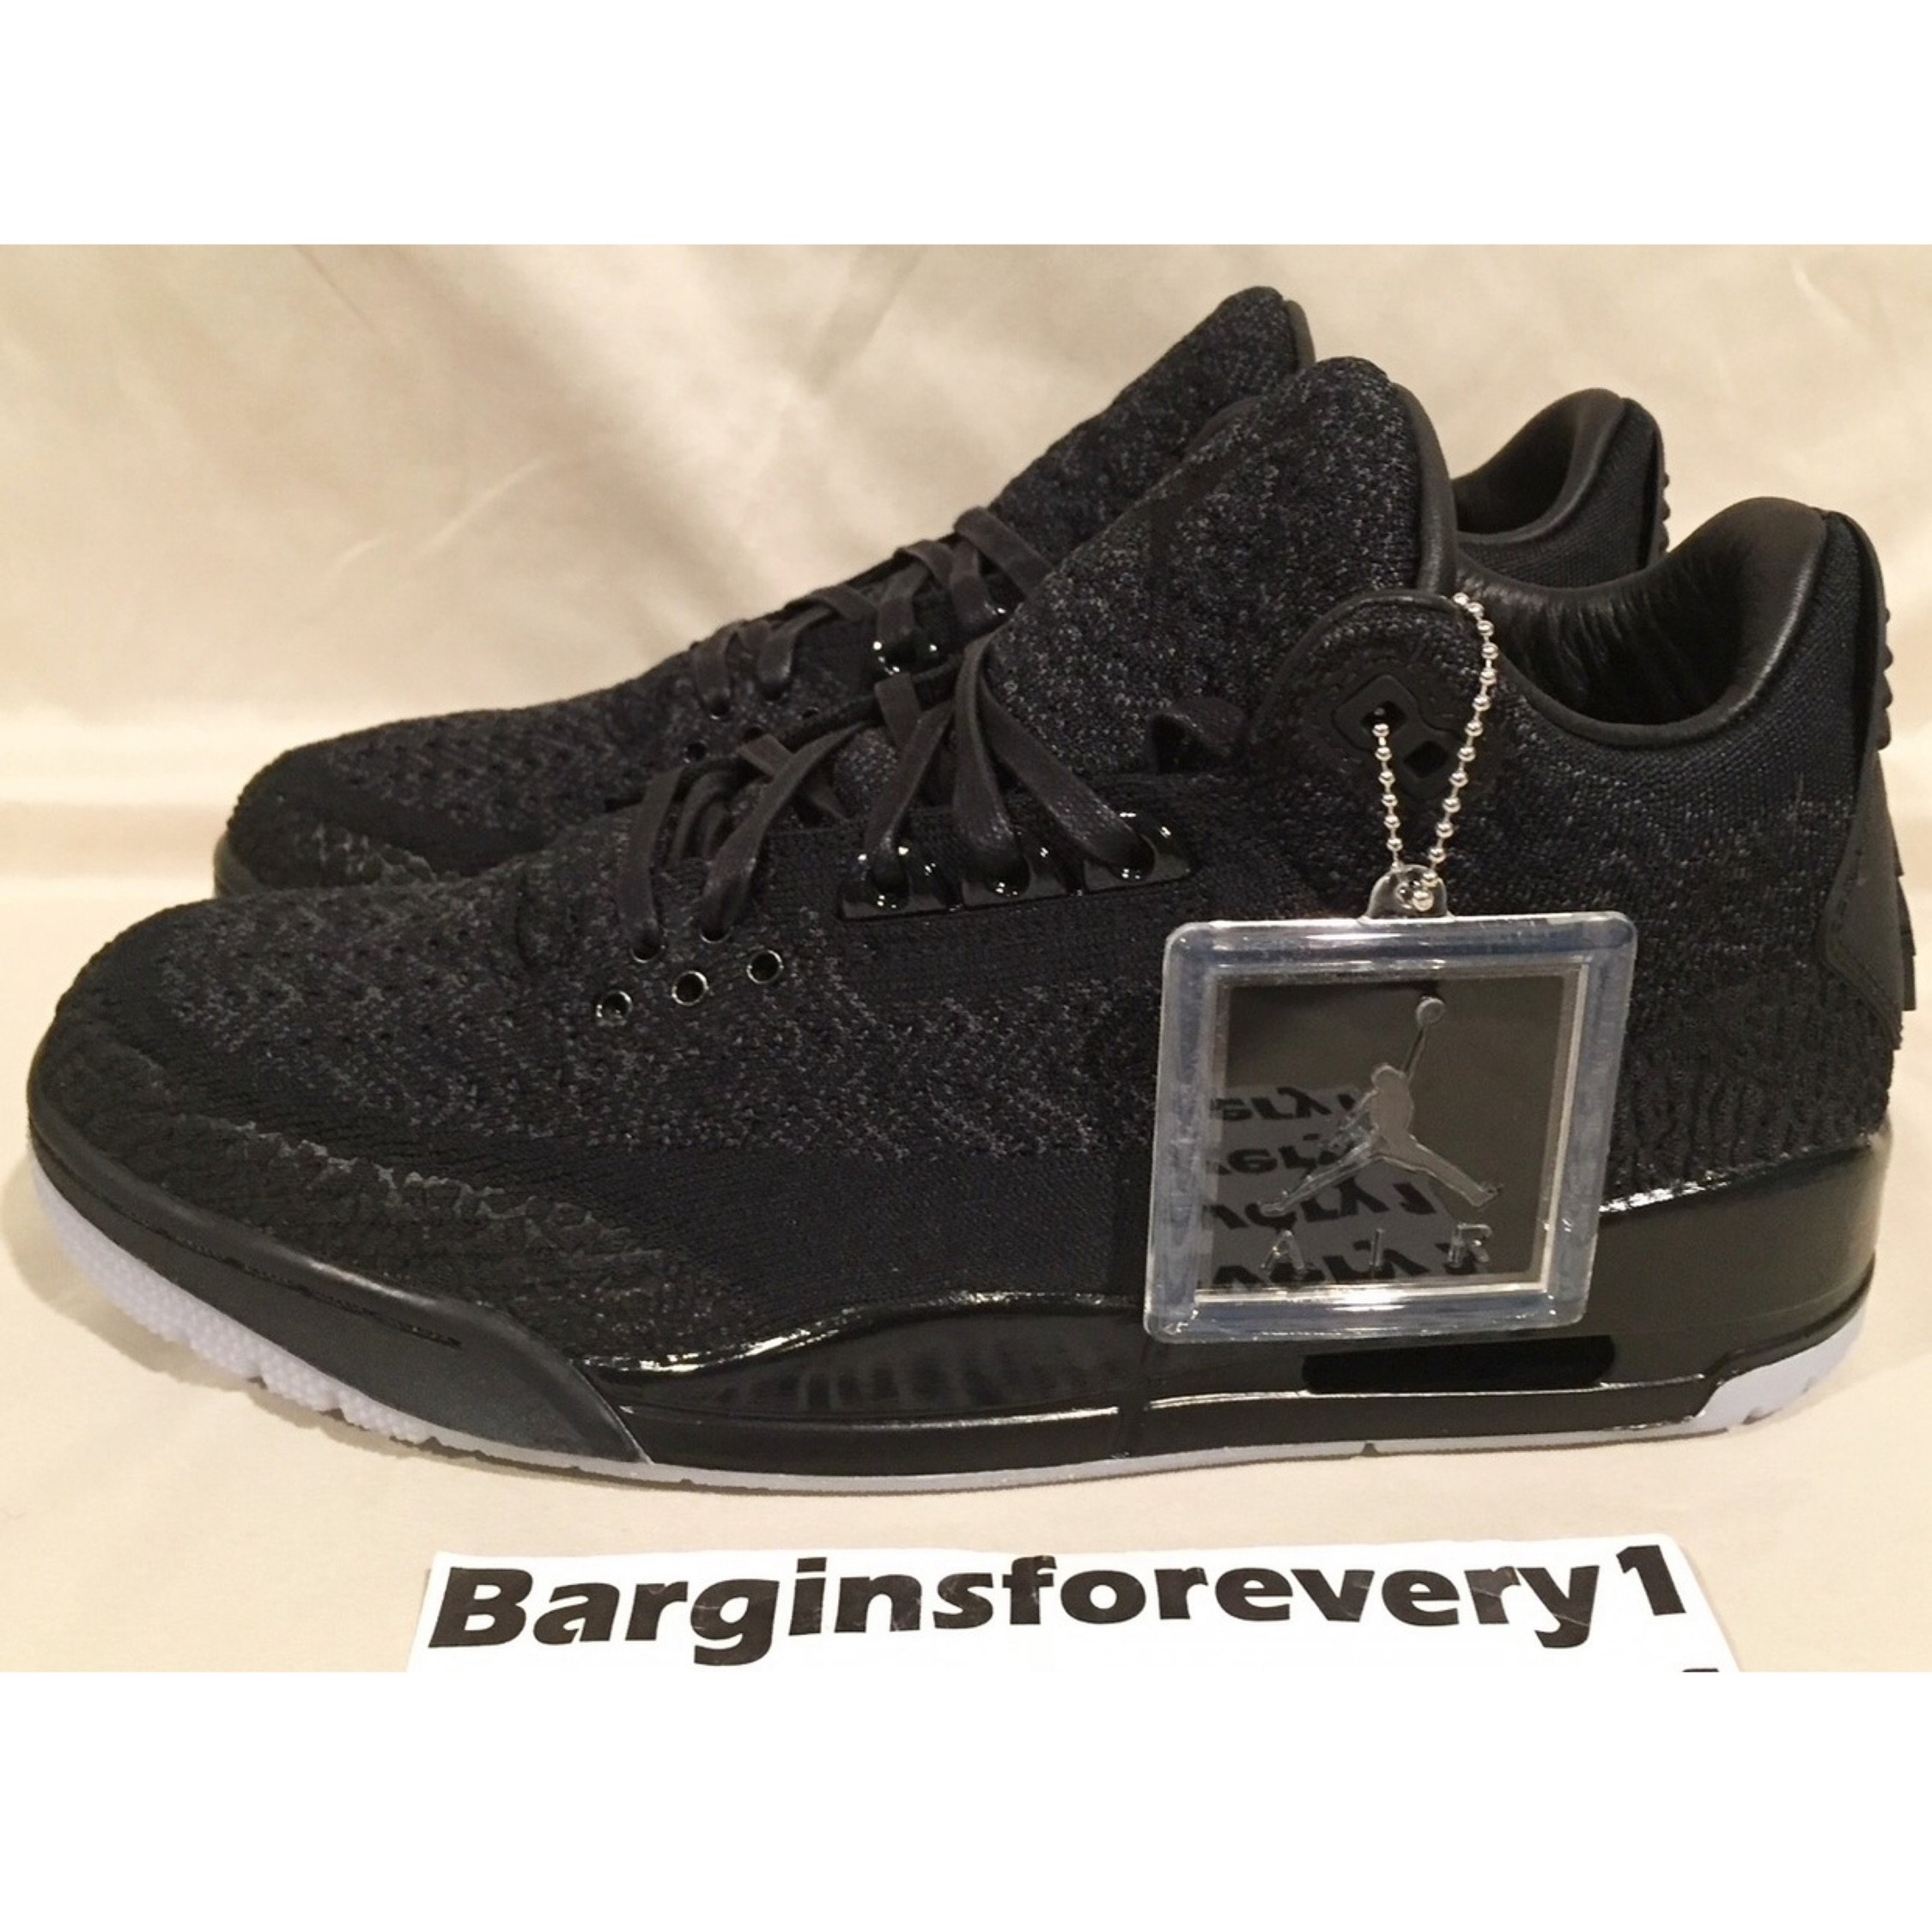 2b09e9c16f713 Air Jordan 3 Retro Flyknit Black Black-Anthracite